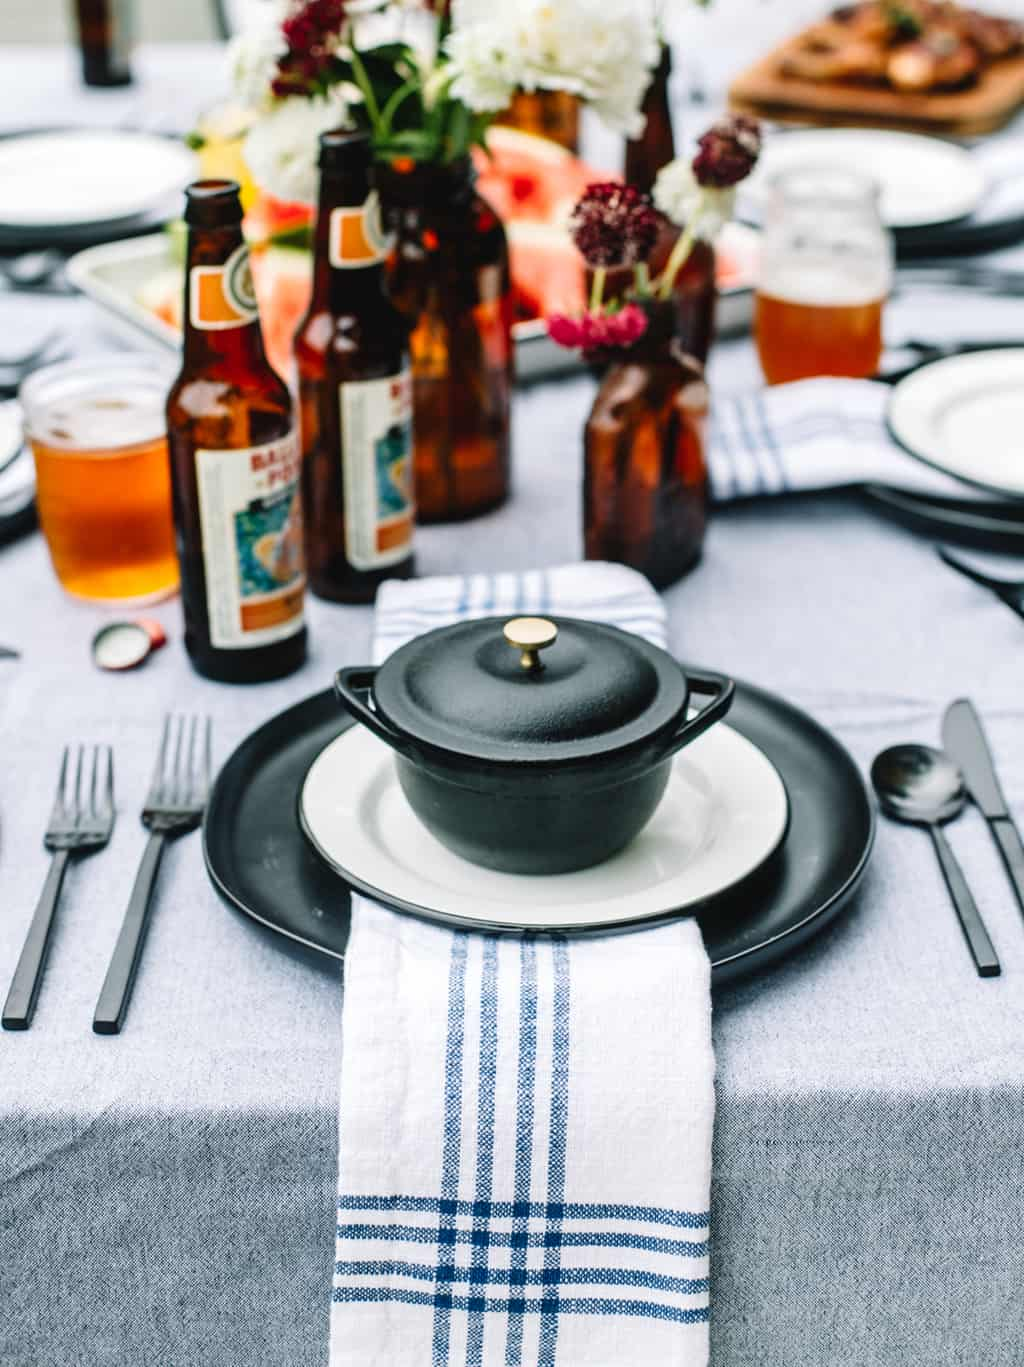 A black plate topped with a blue and white napkin on top of a tablescape.